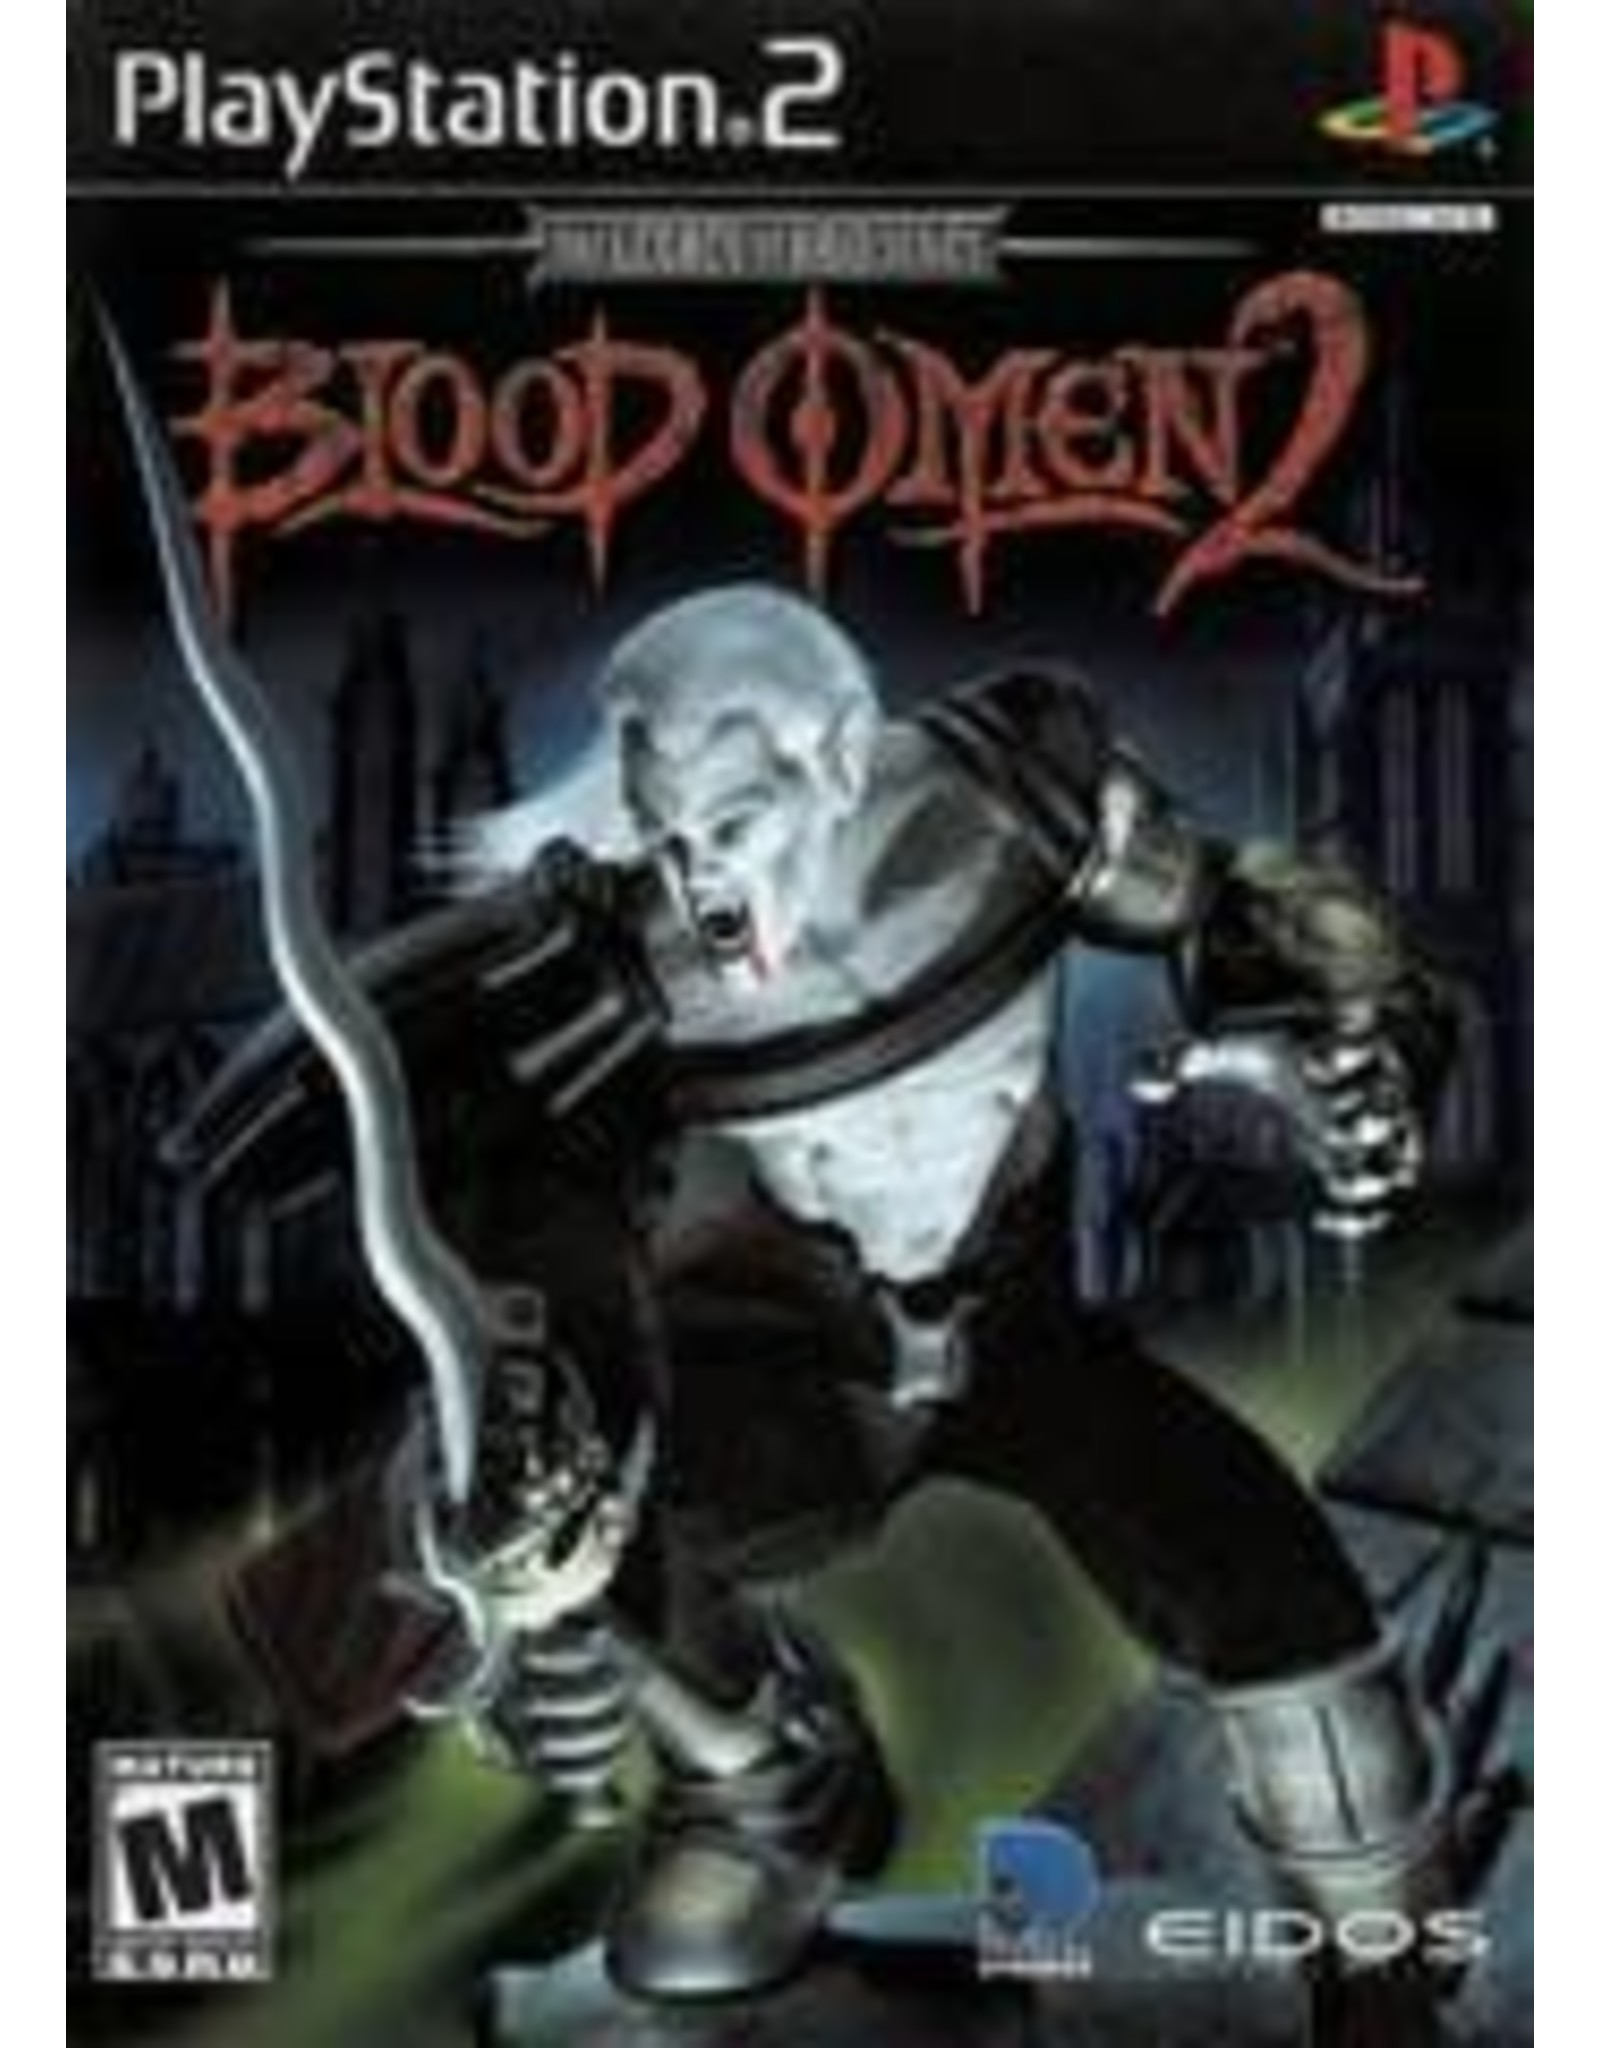 Playstation 2 Blood Omen 2 (No Manual)